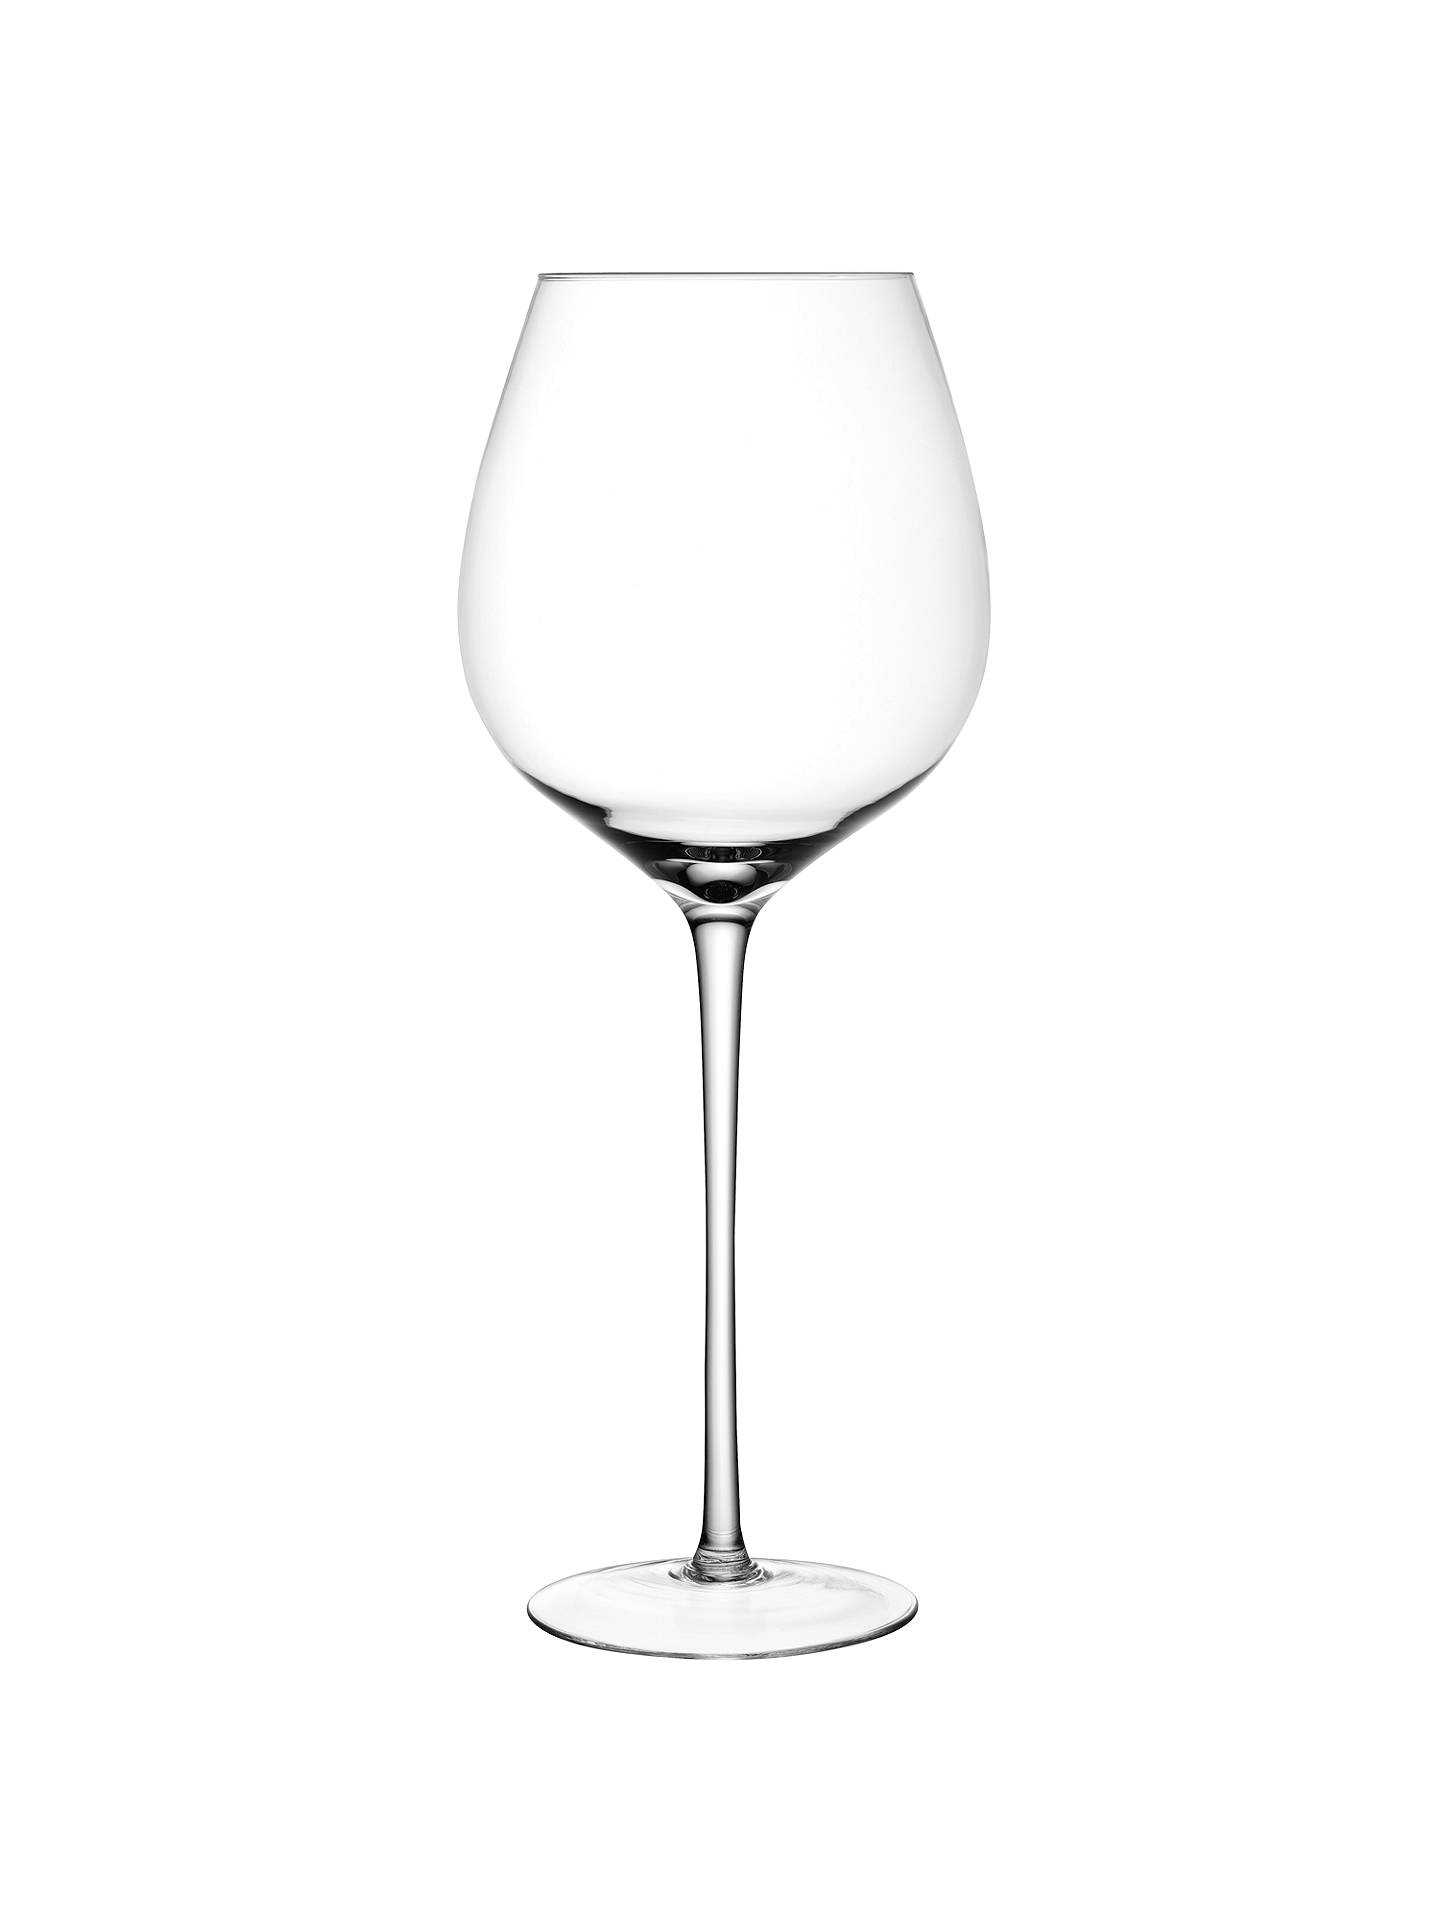 Buy LSA International Maxa Giant Wine Glass, 1.8L Online at johnlewis.com